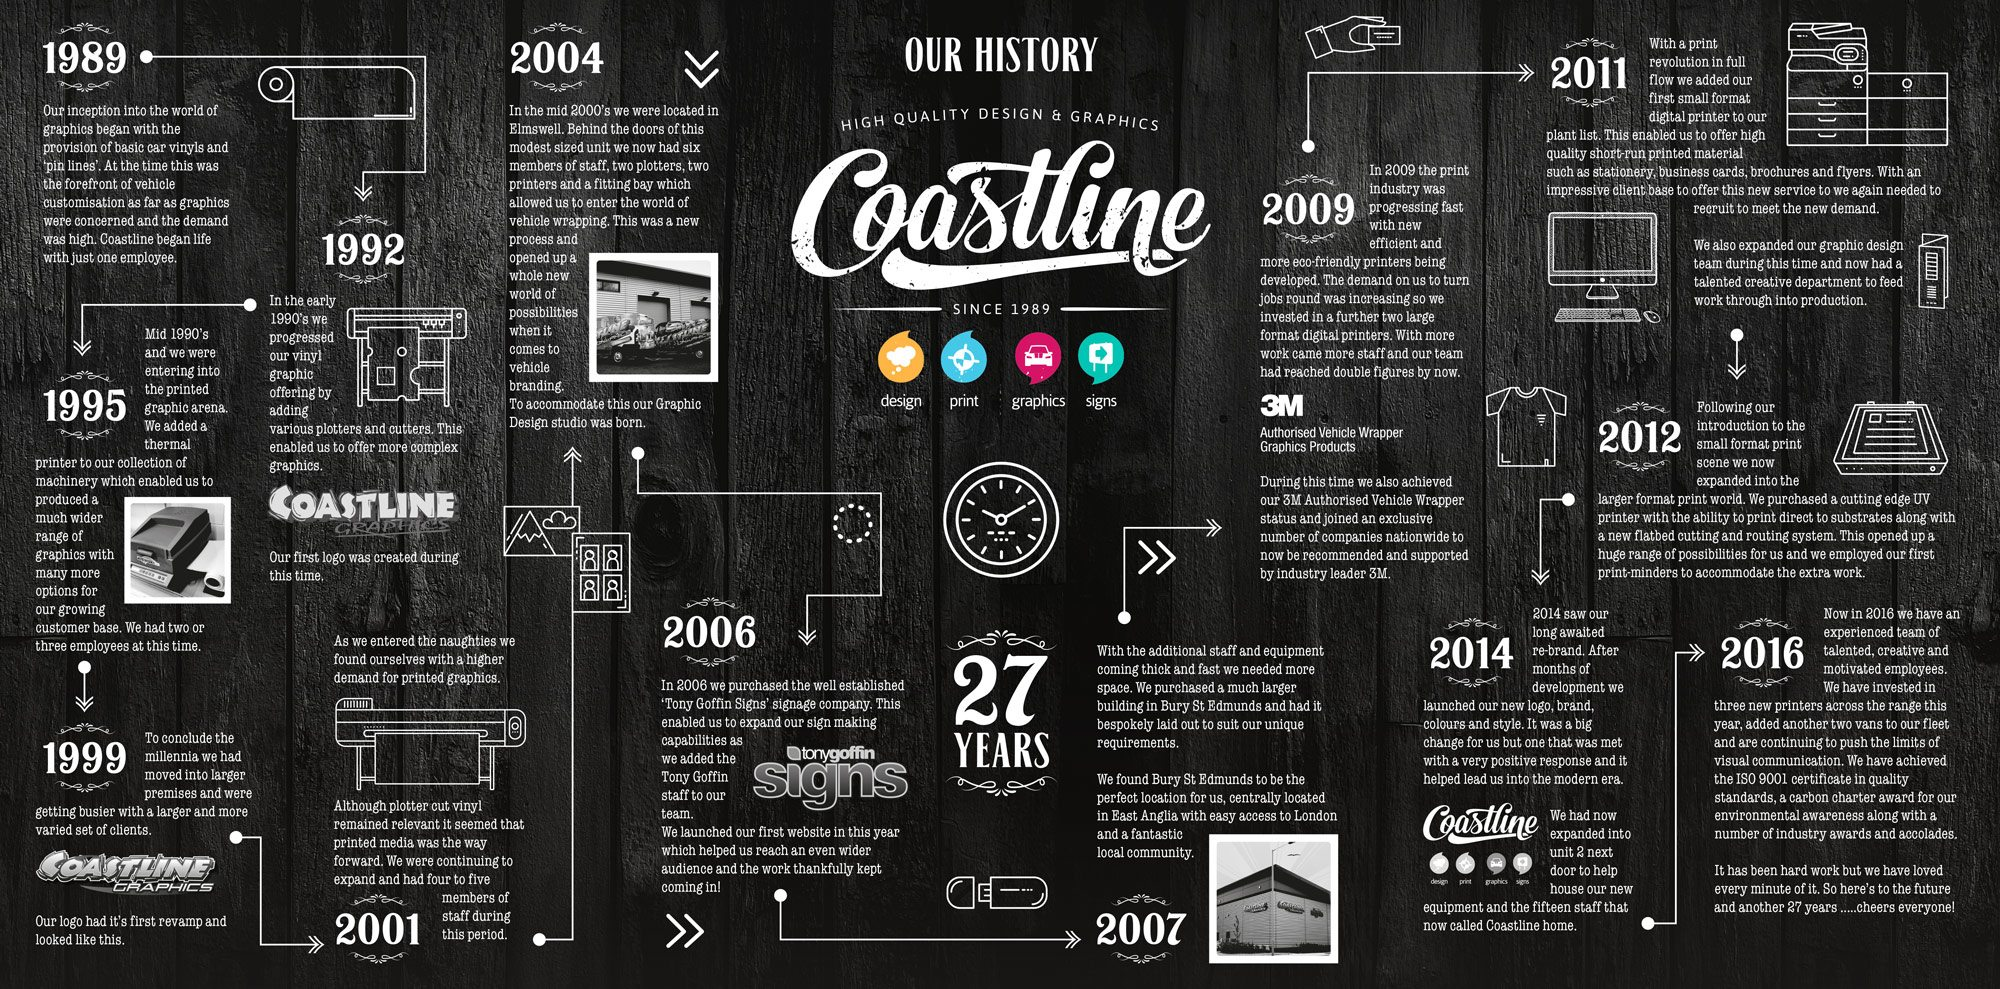 Coastline – Our History